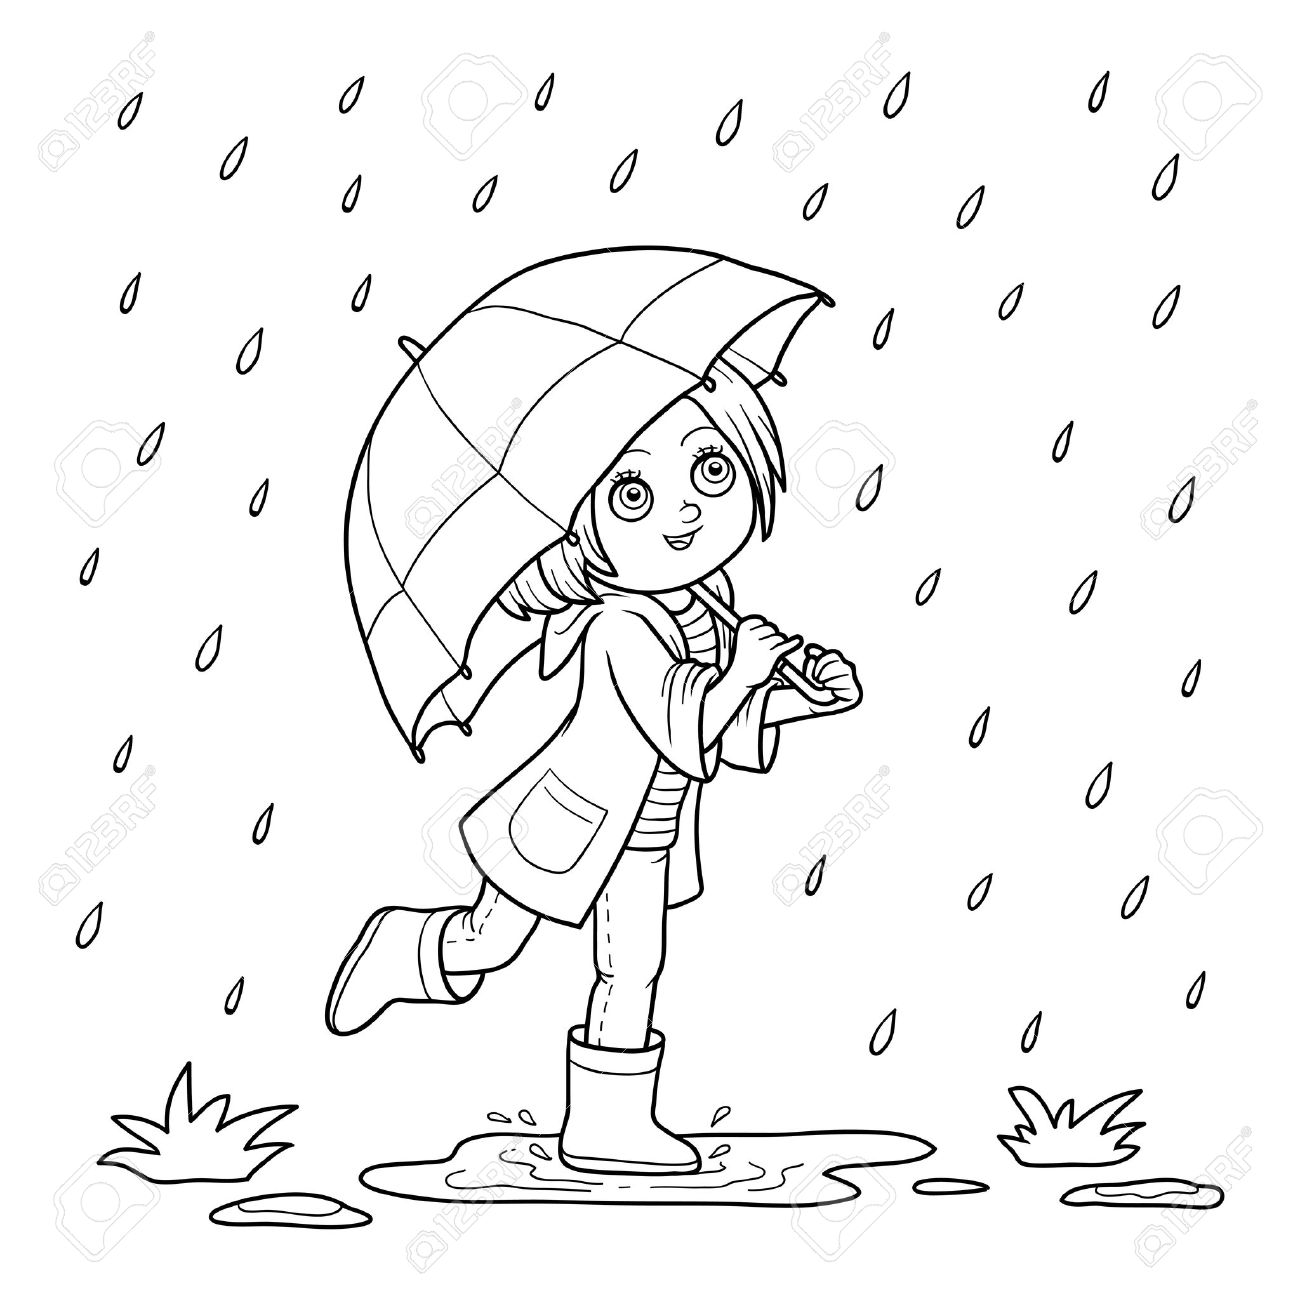 Coloring book for girl - Coloring Book For Children Girl Running With An Umbrella In The Rain Stock Vector